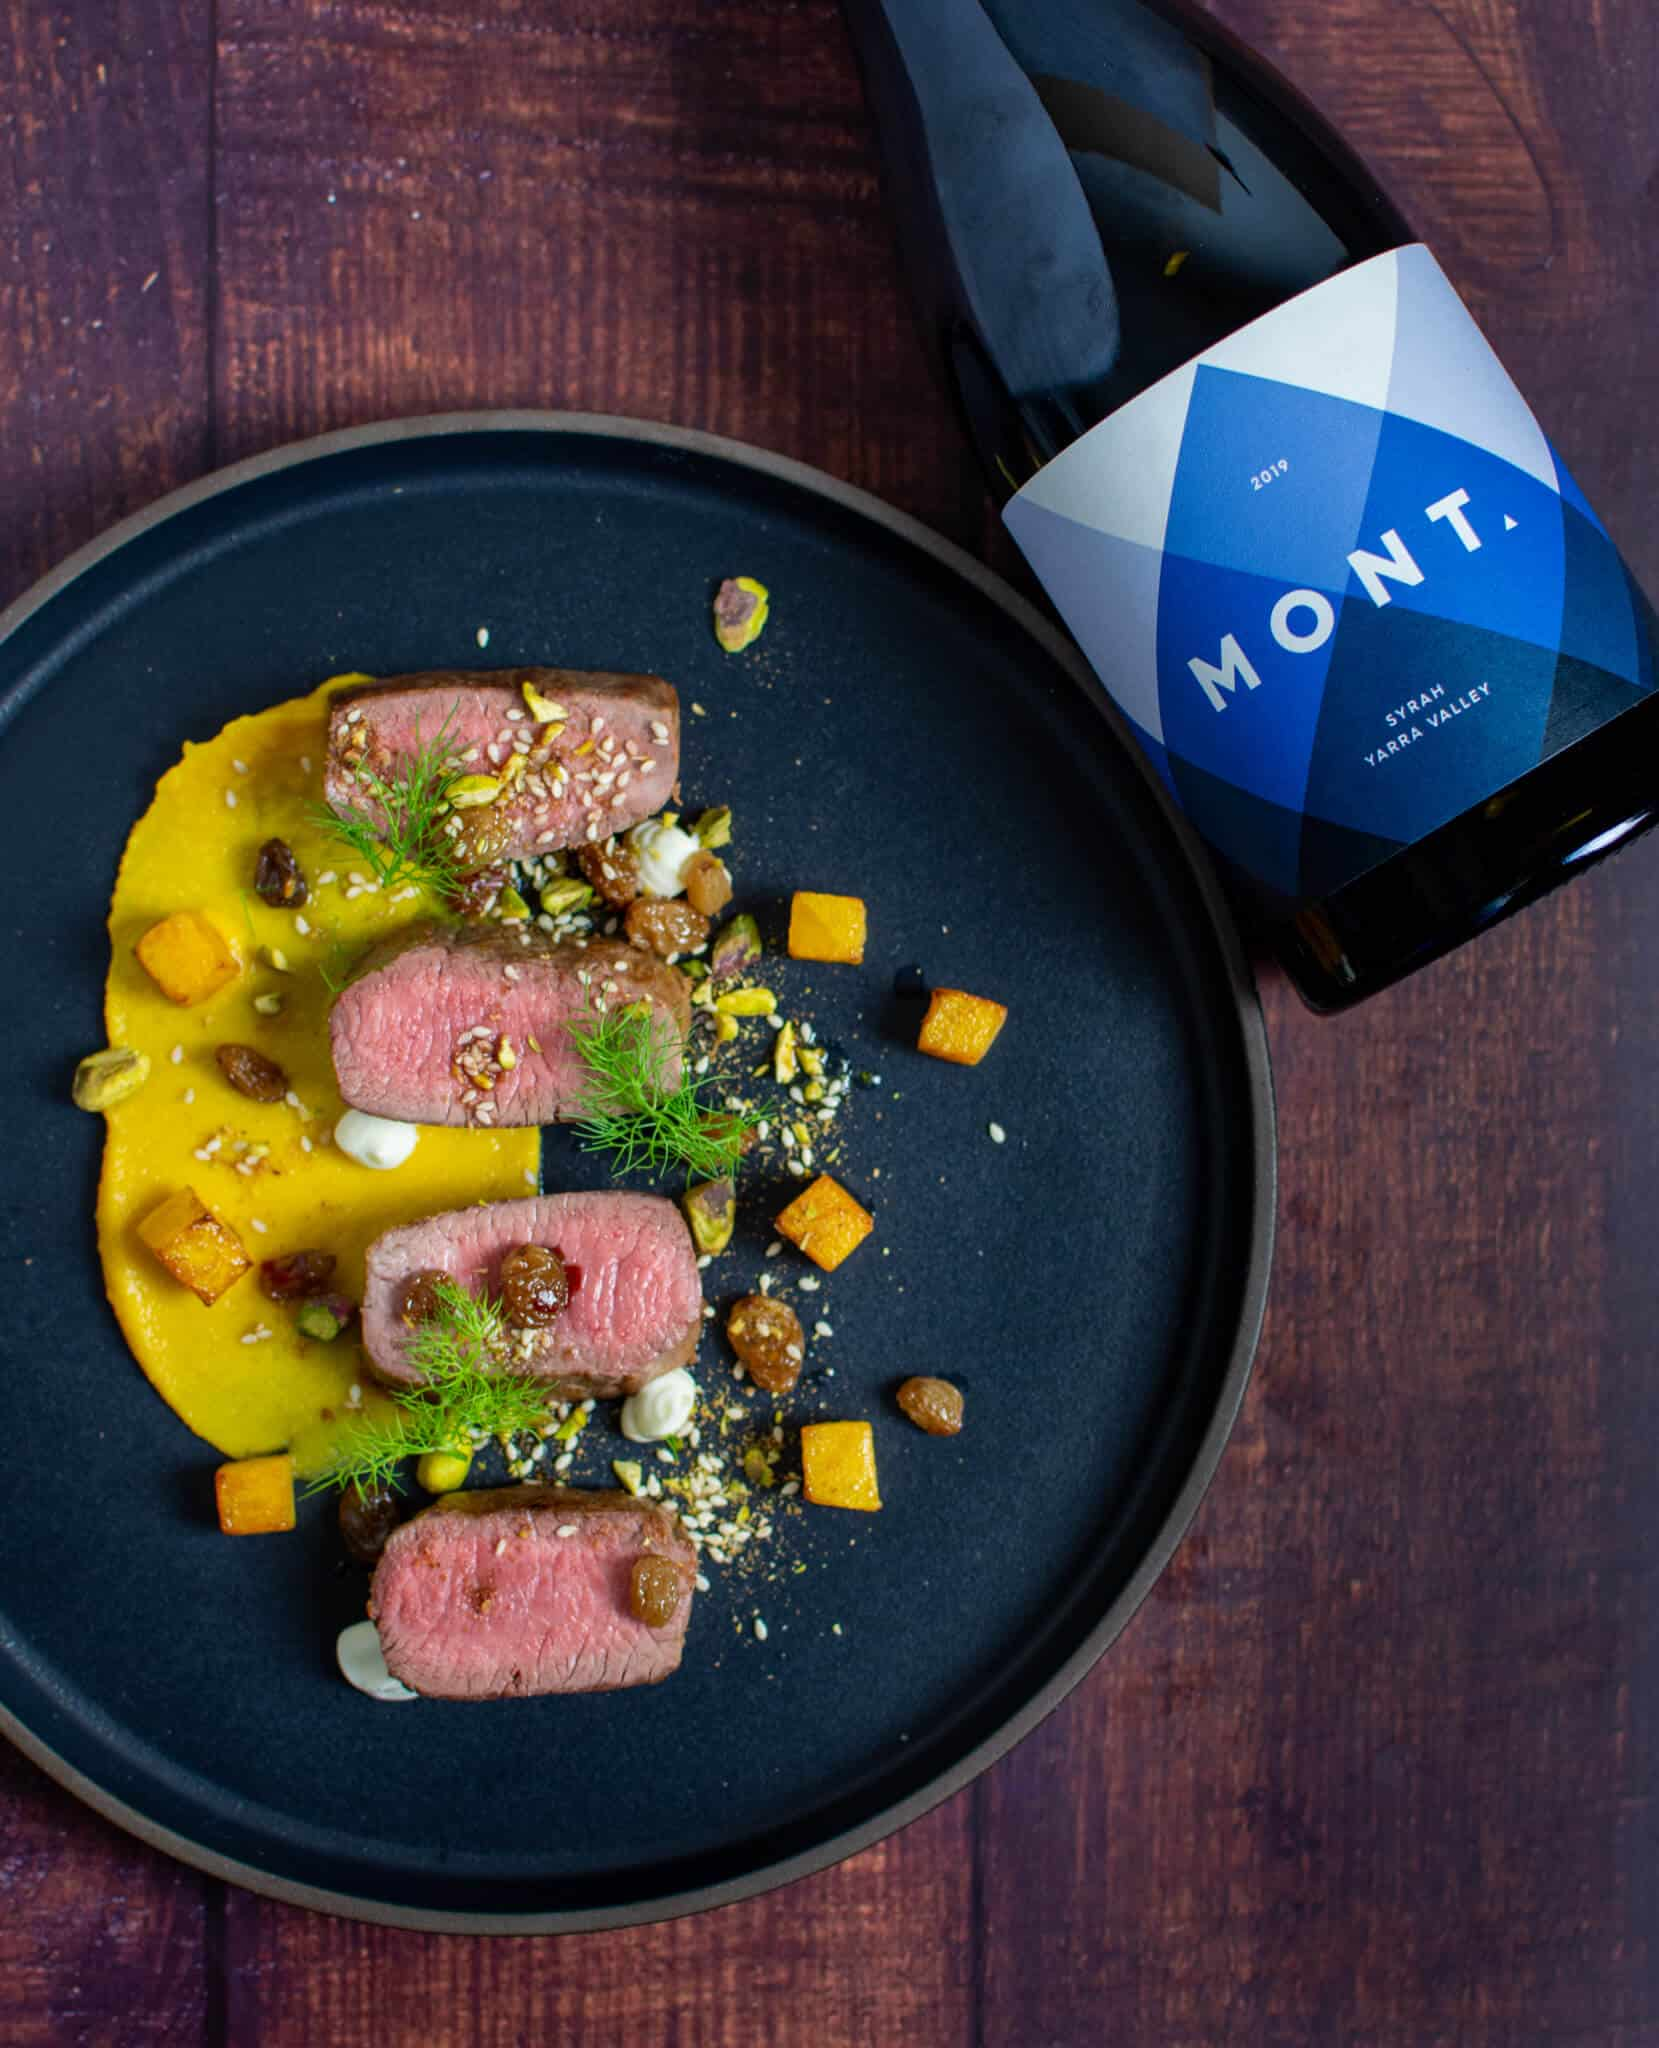 lamb, smoked squash puree, & pistachio dukkah on a black plate with mont wines syrah next to it